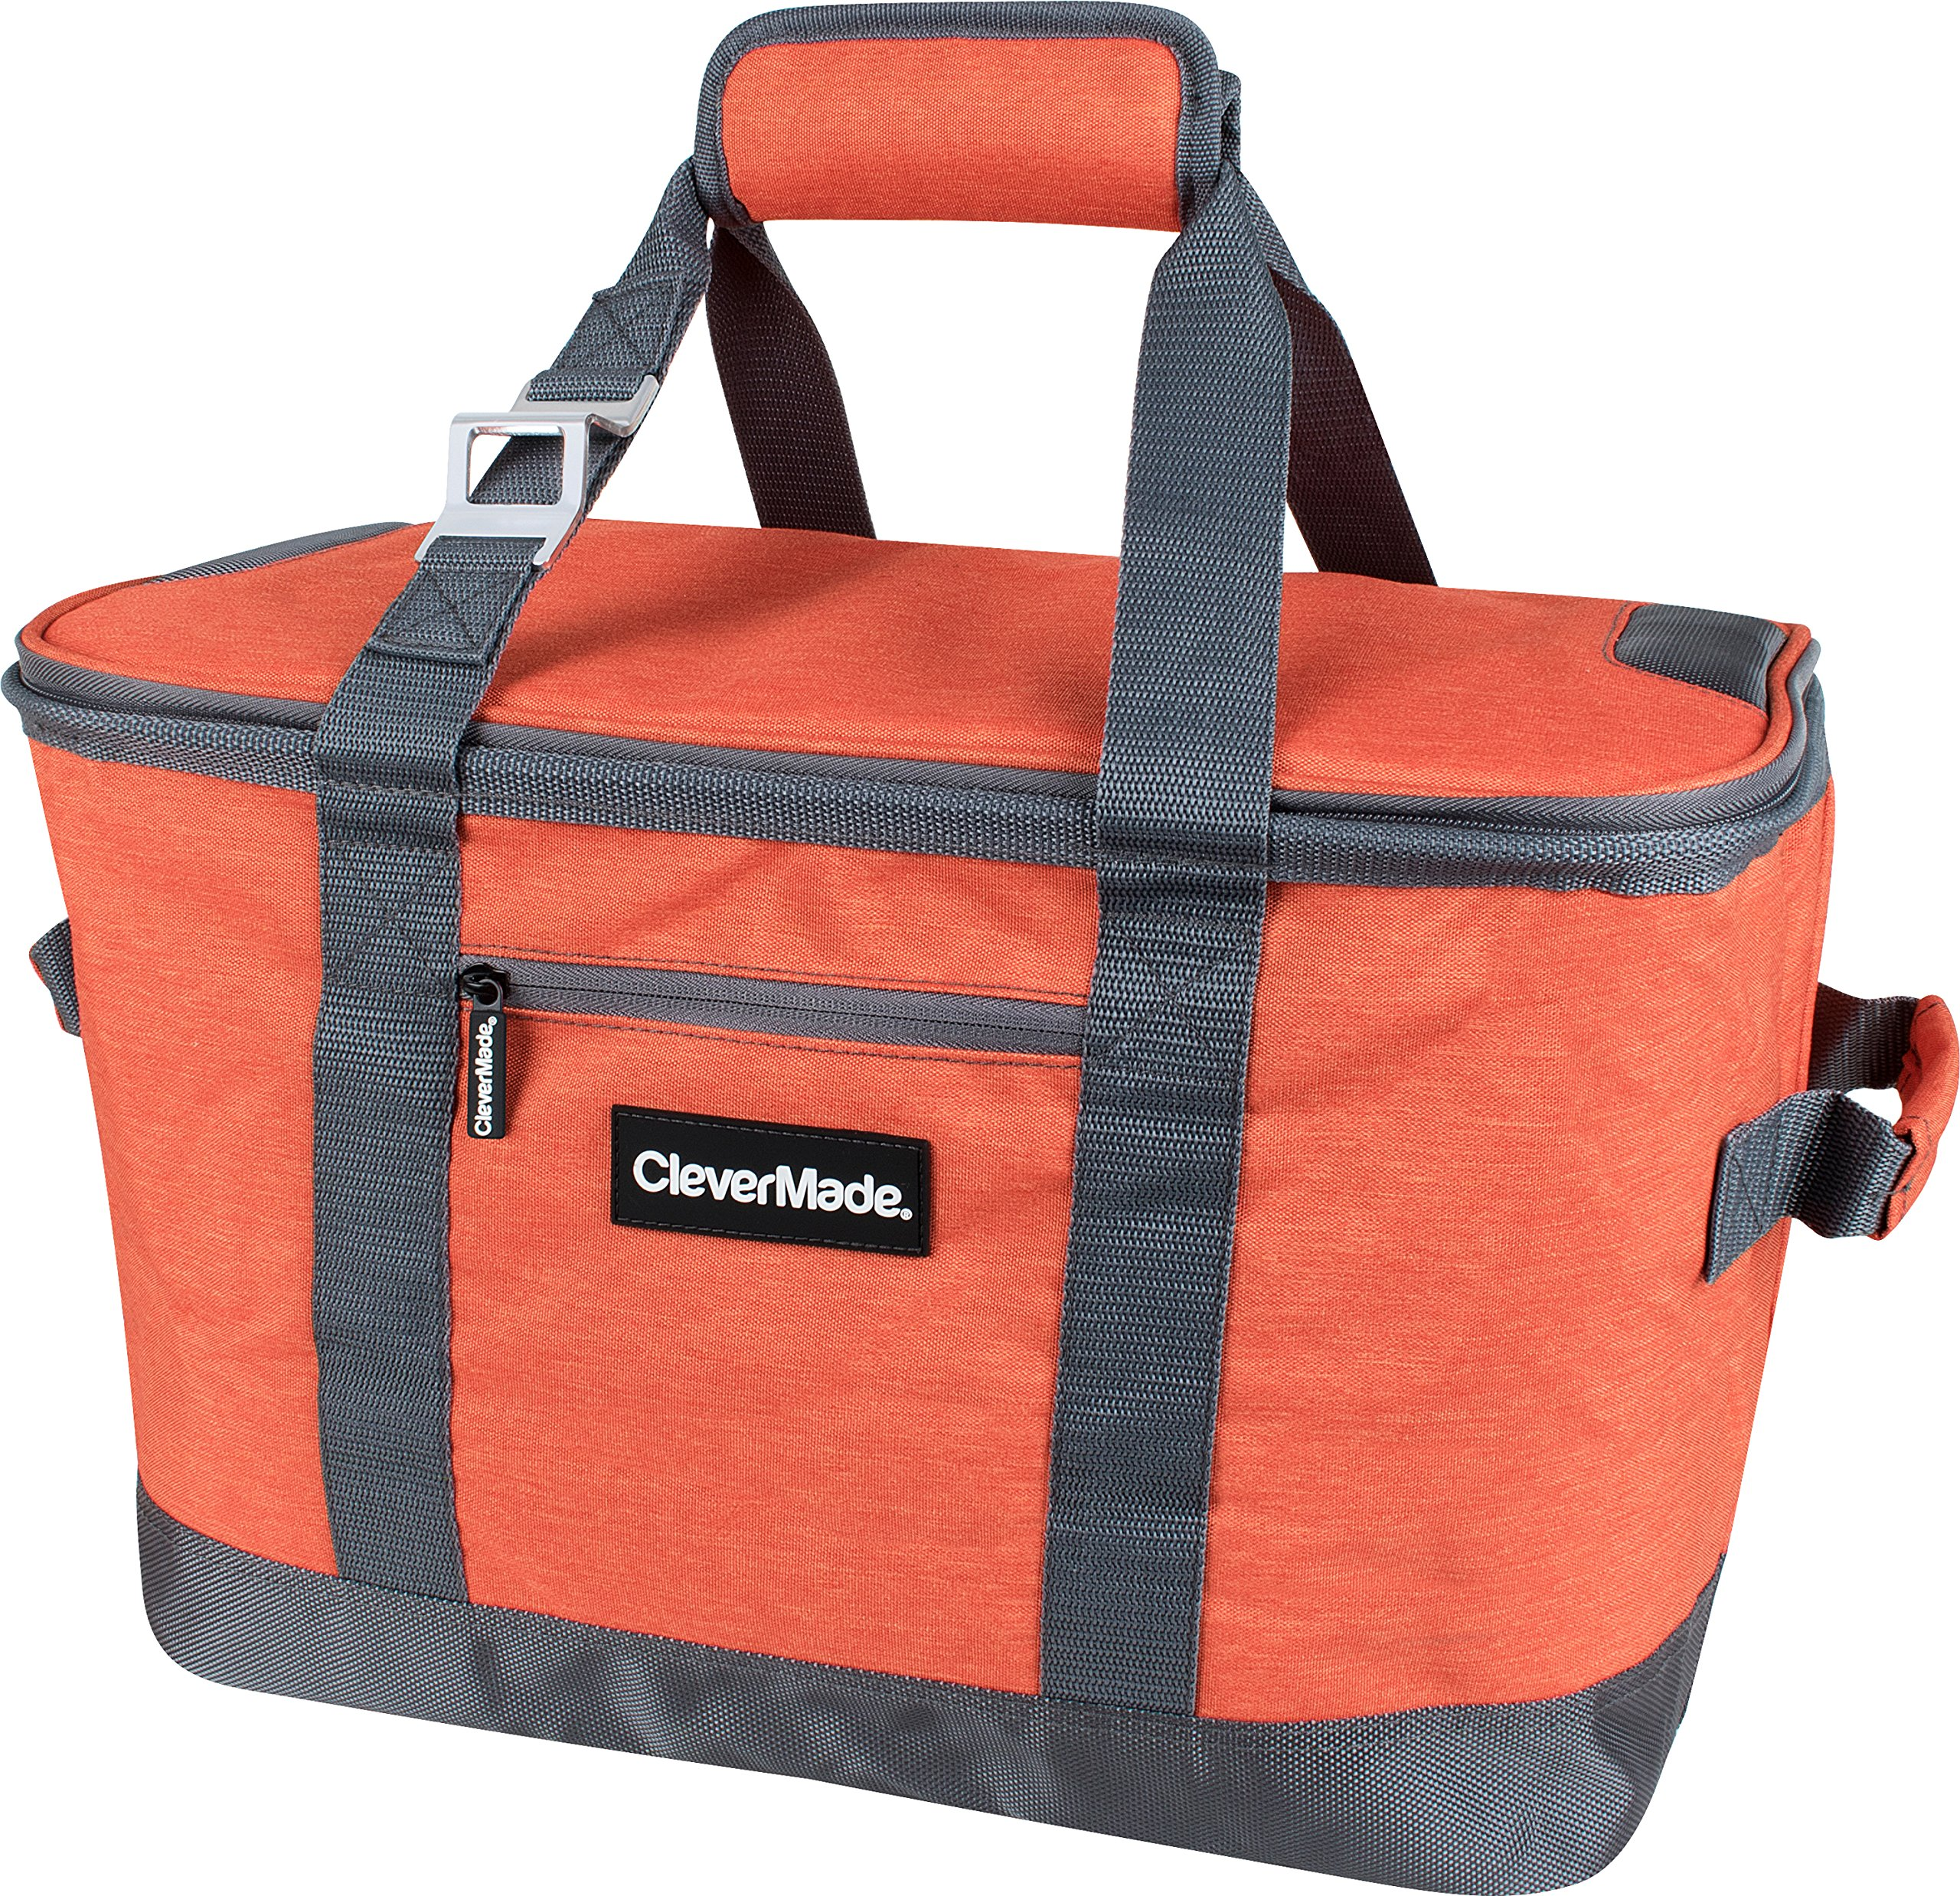 CleverMade SnapBasket 50 Can, Soft-Sided Collapsible Cooler: 30 Liter Insulated Tote Bag, Heathered Orange/Charcoal by CleverMade